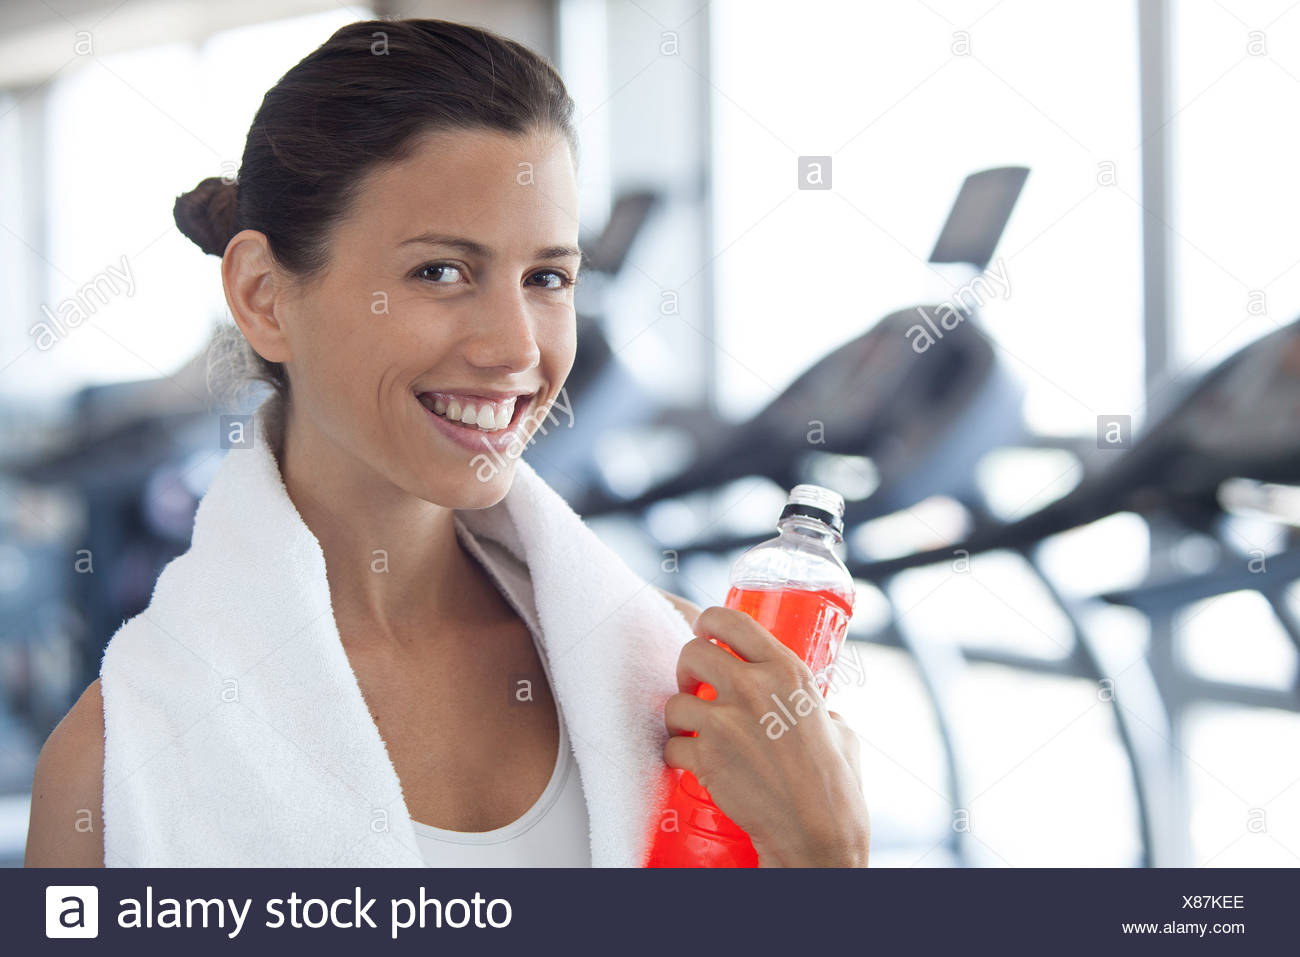 Woman hydrating after working out - Stock Image